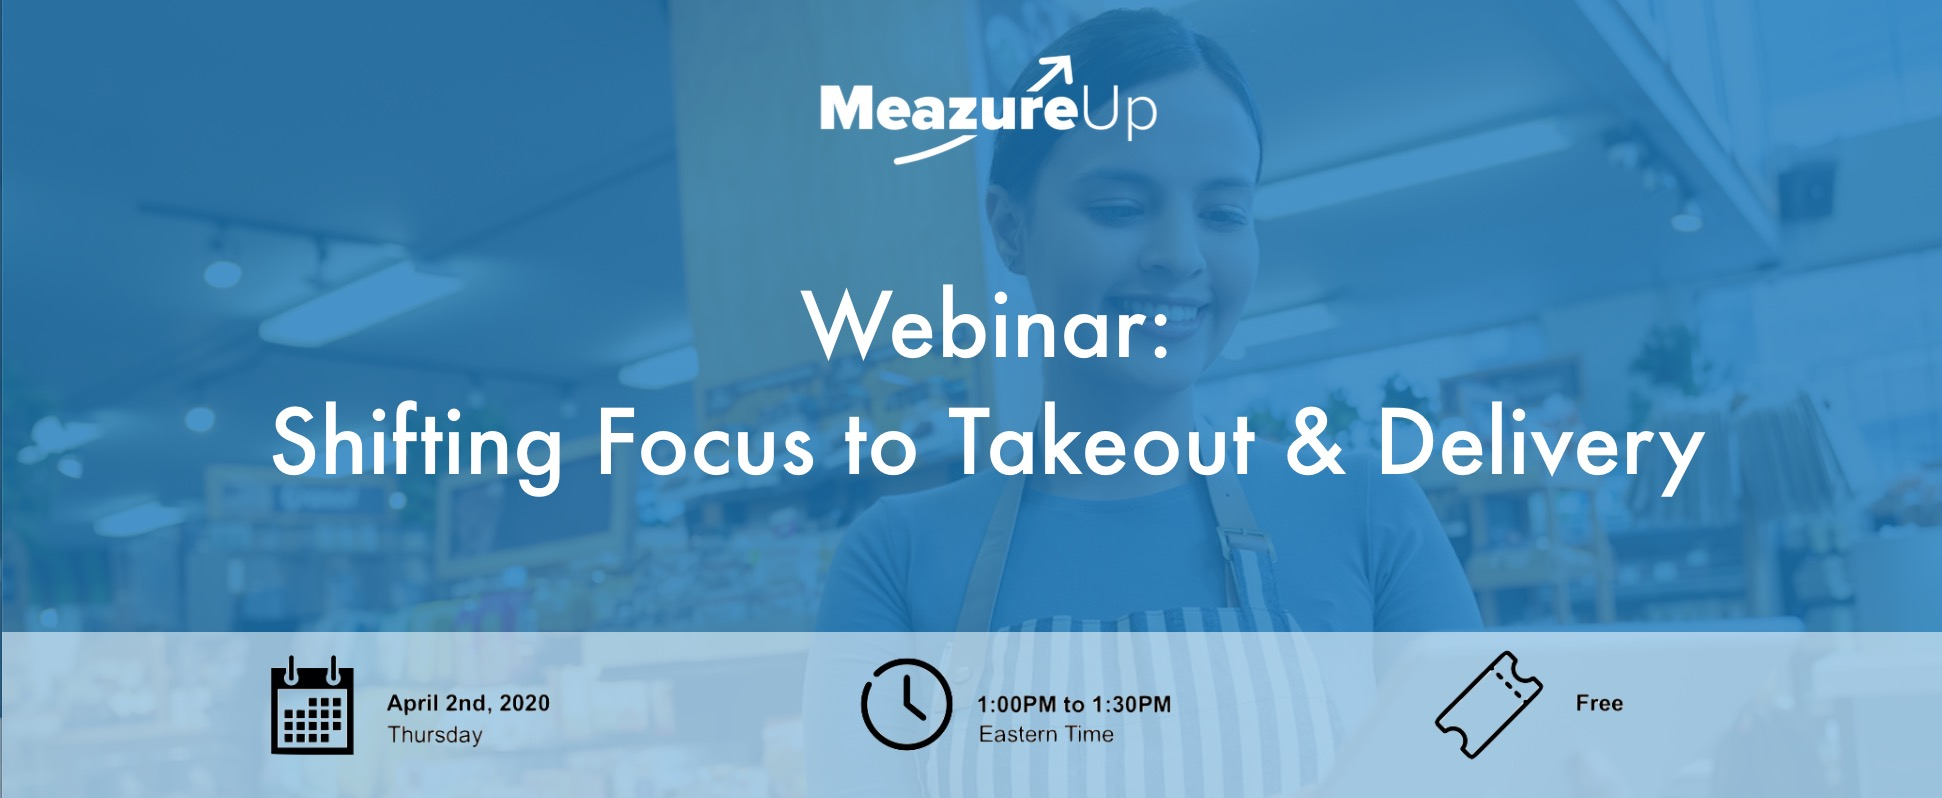 Webinar: Shifting Focus to Takeout & Delivery